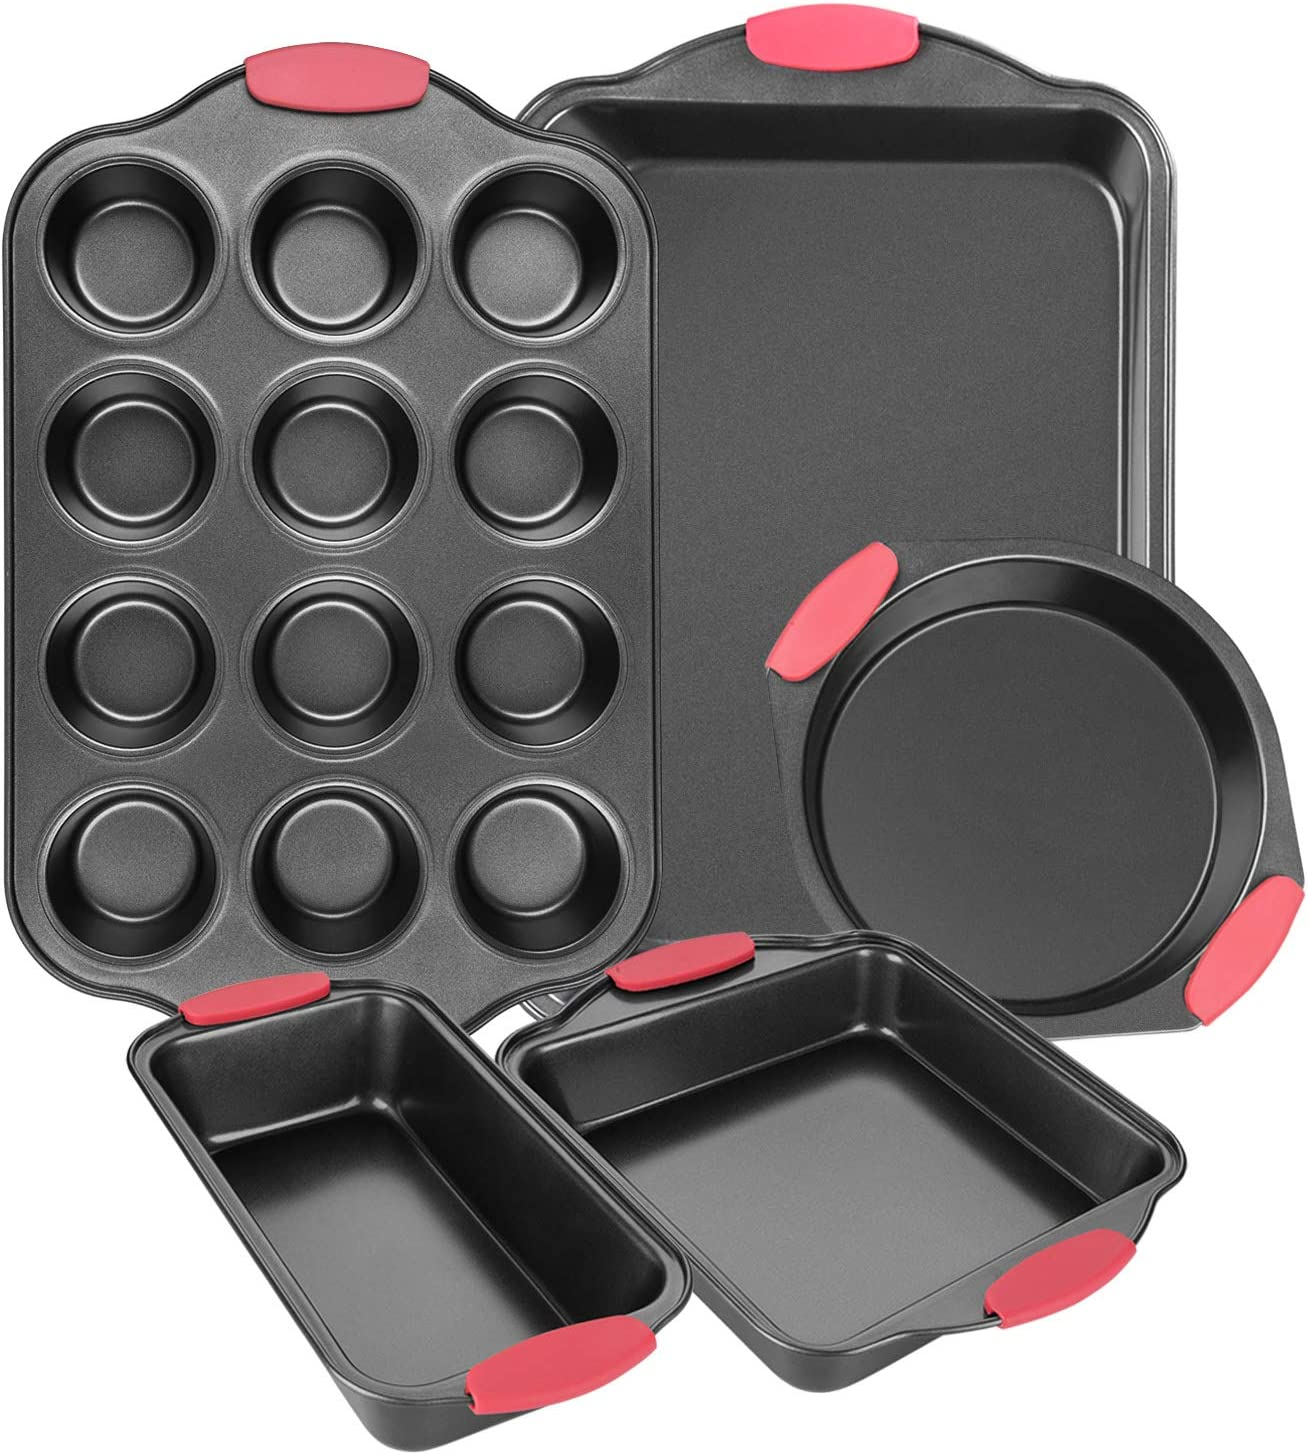 Bakeware Sets, Nonstick Baking sets with Grips includes Bread Pan, Cookie Sheet, Square Baking Pan, Round Cake Pan and Muffin Pan for Toaster Oven 5 Pcs, Grey